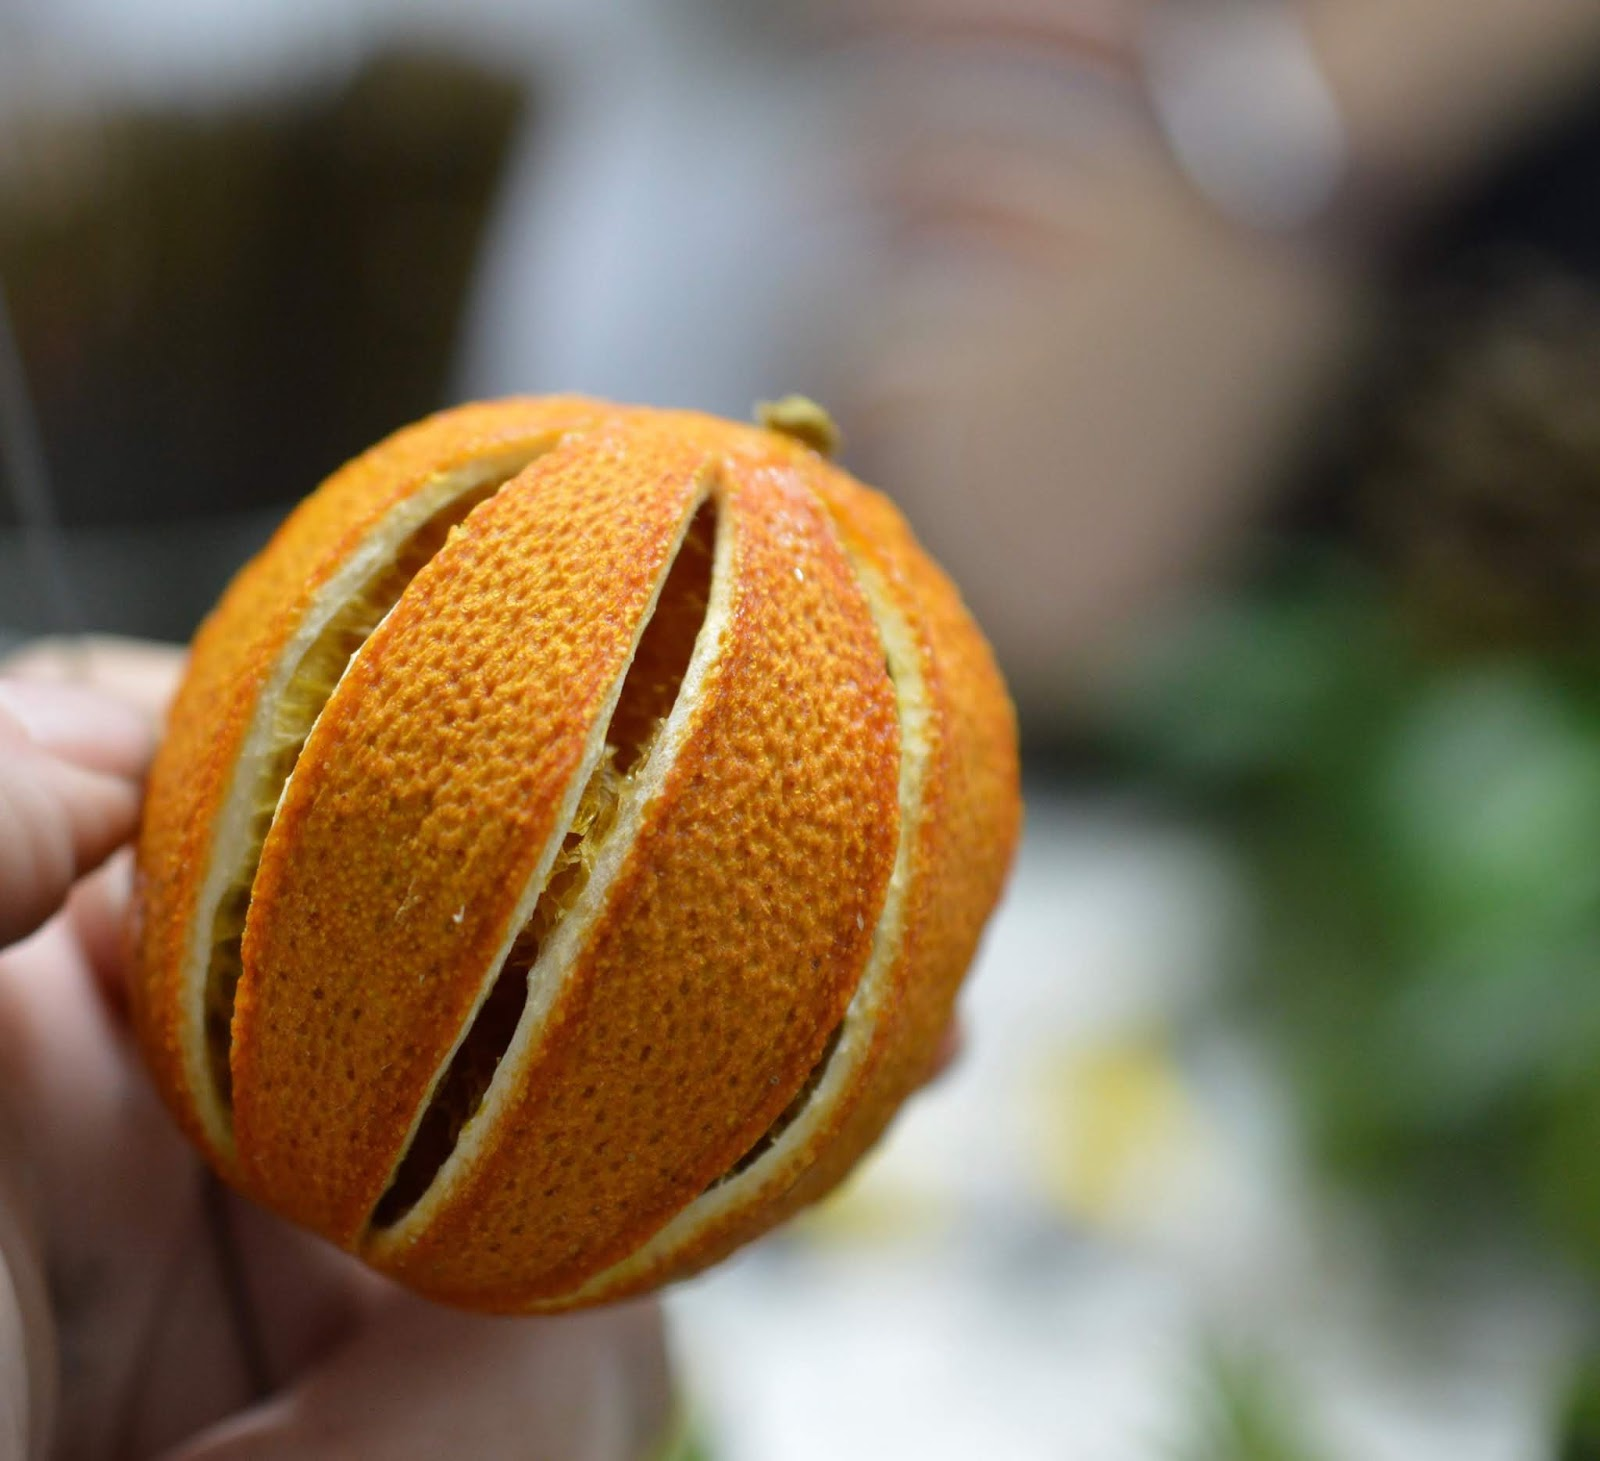 How hard is it to make your own wreath for Christmas?  - dried oranges